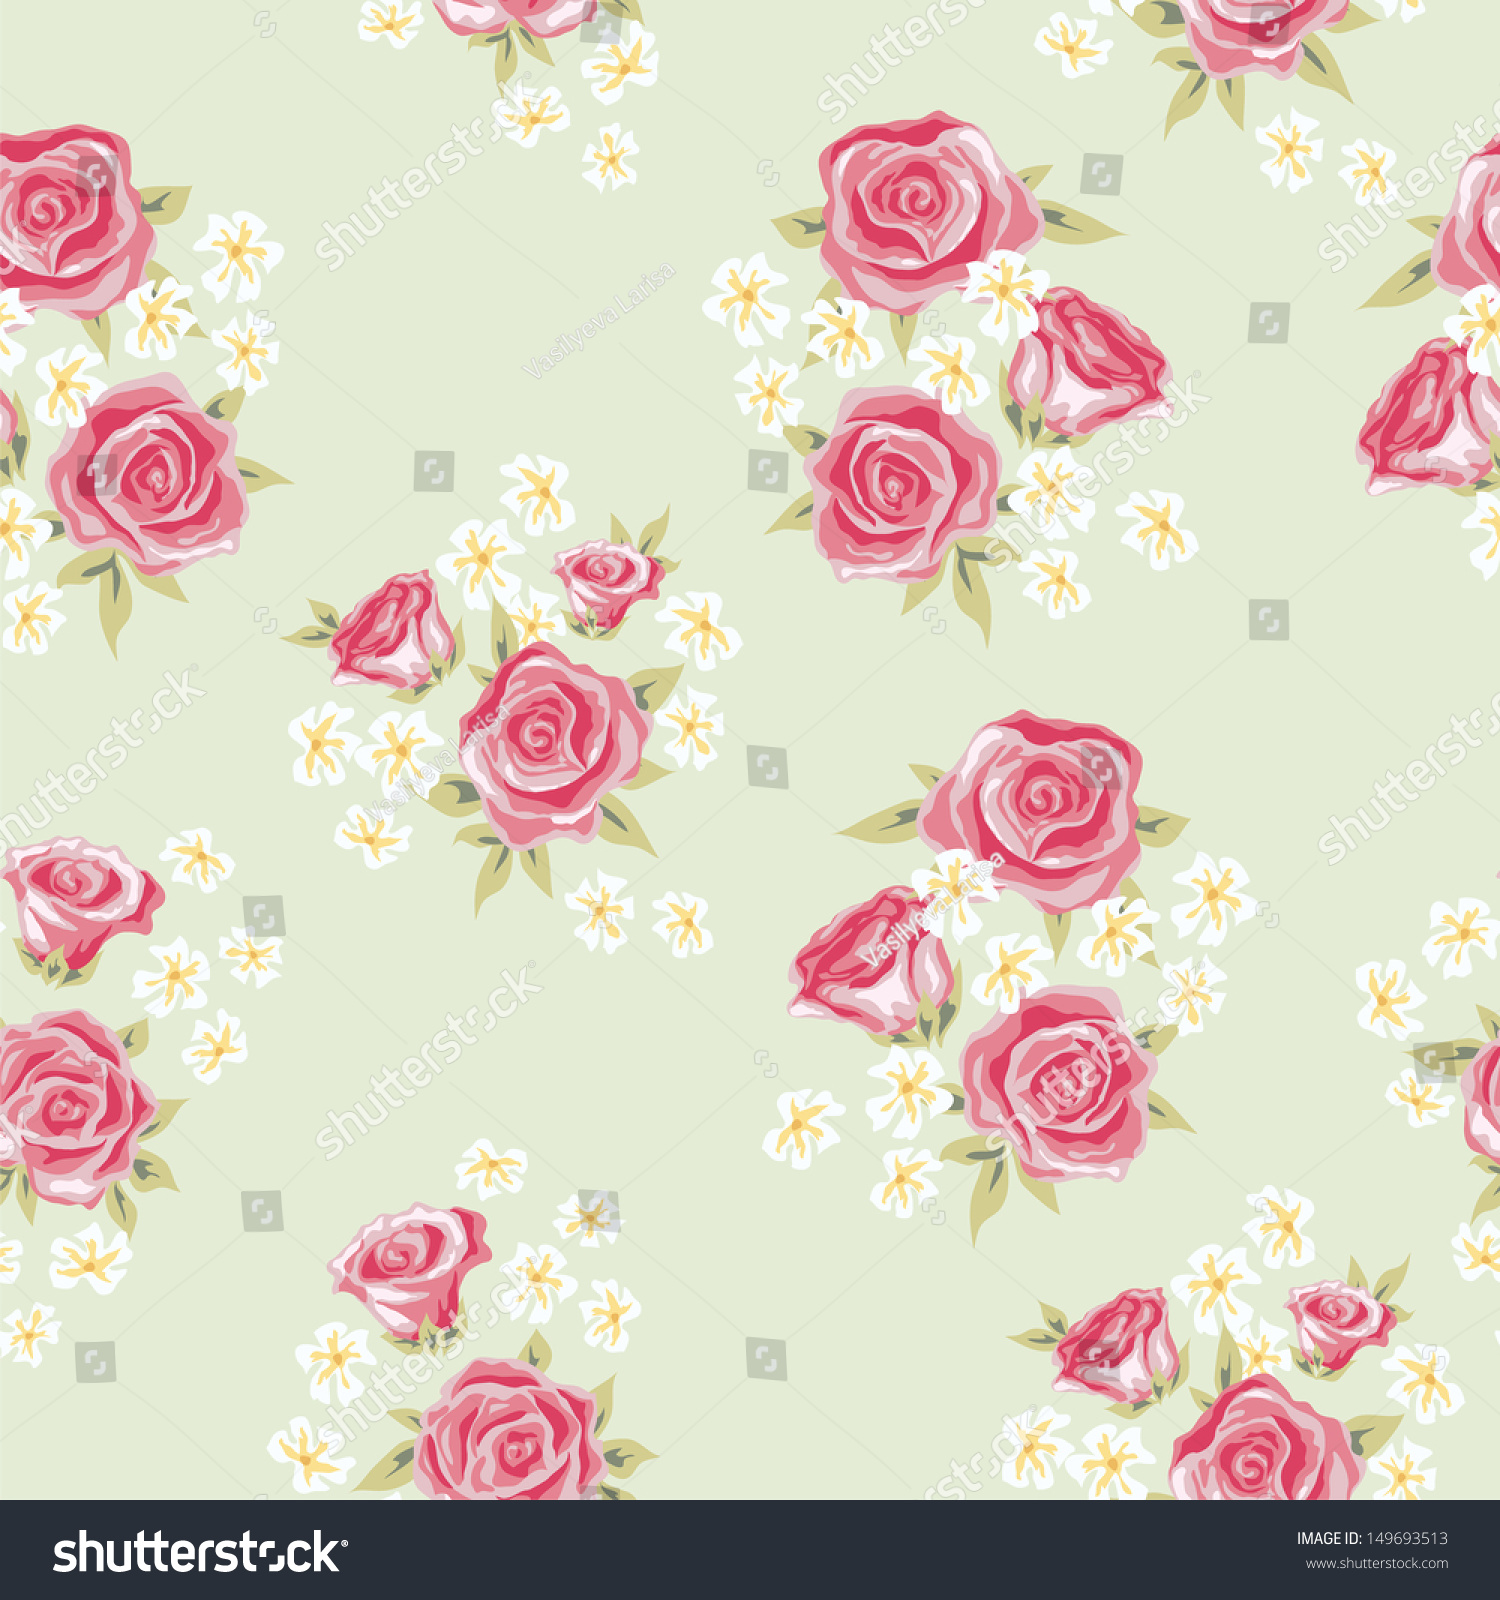 Floral Seamless Vintage Pattern Shabby Chic Stock Vector